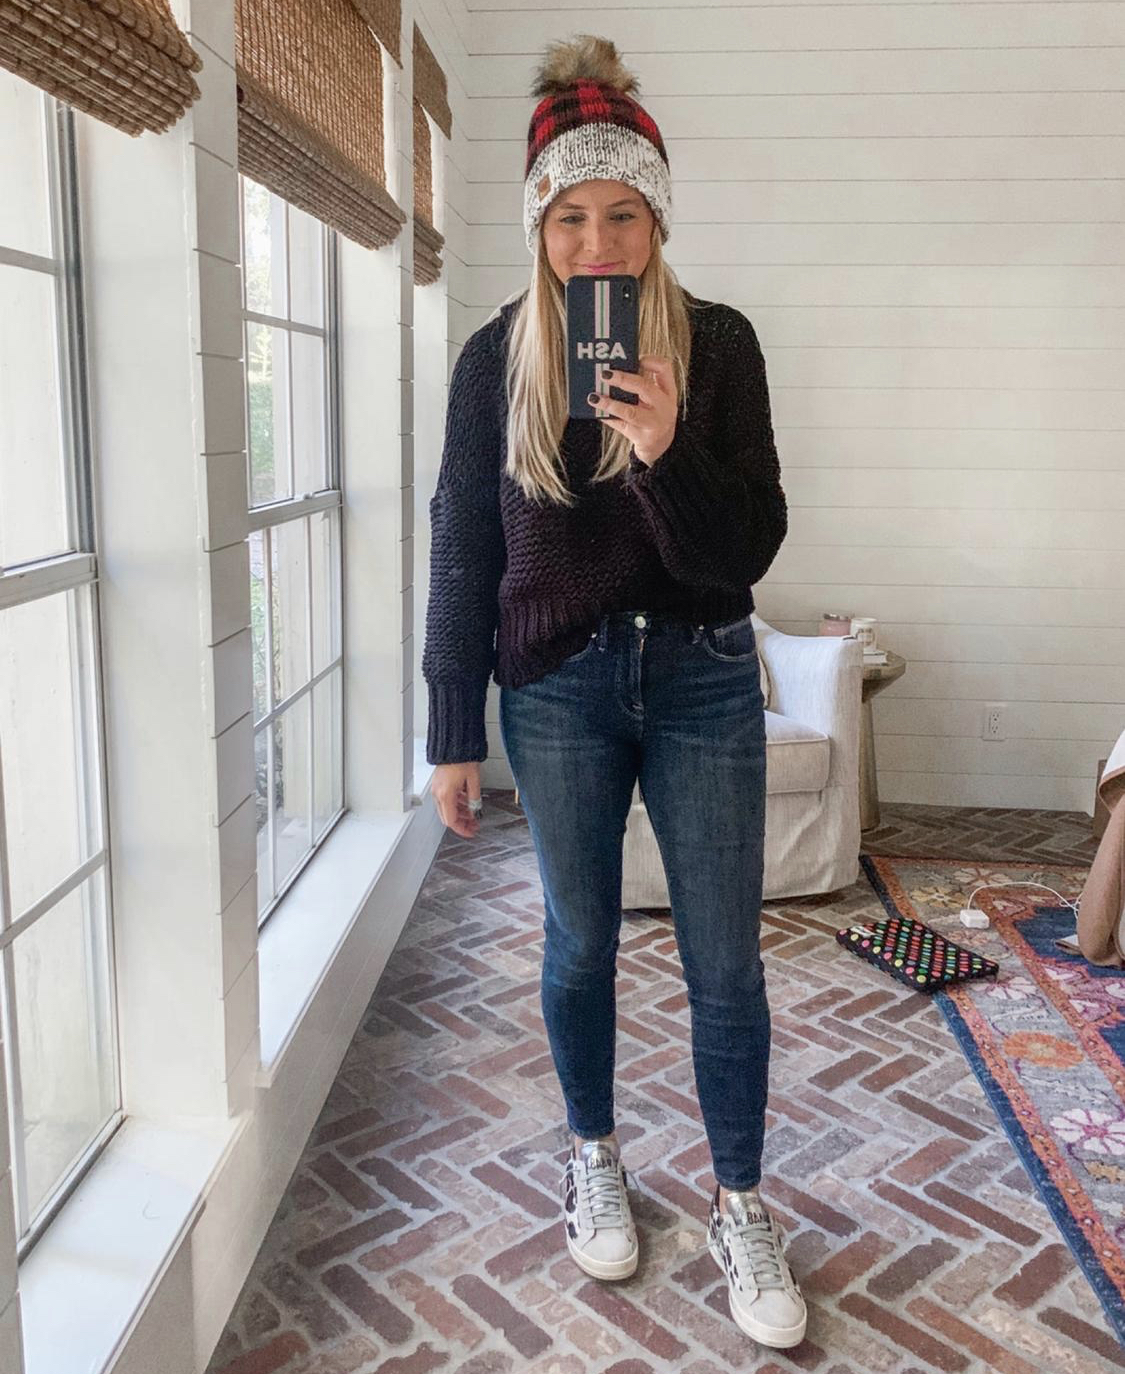 December Outfits by popular Houston fashion blog, Fancy Ashley: image of a woman a black and red buffalo plaid beanie, black cable knit sweater, jeans, and leopard print golden goose sneakers.